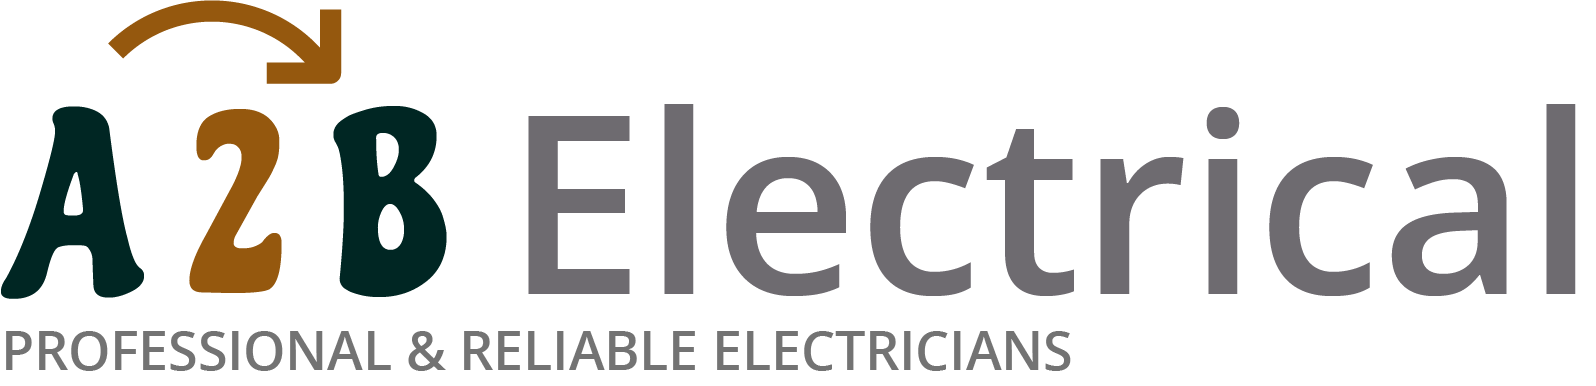 If you have electrical wiring problems in Lancaster Gate, we can provide an electrician to have a look for you.